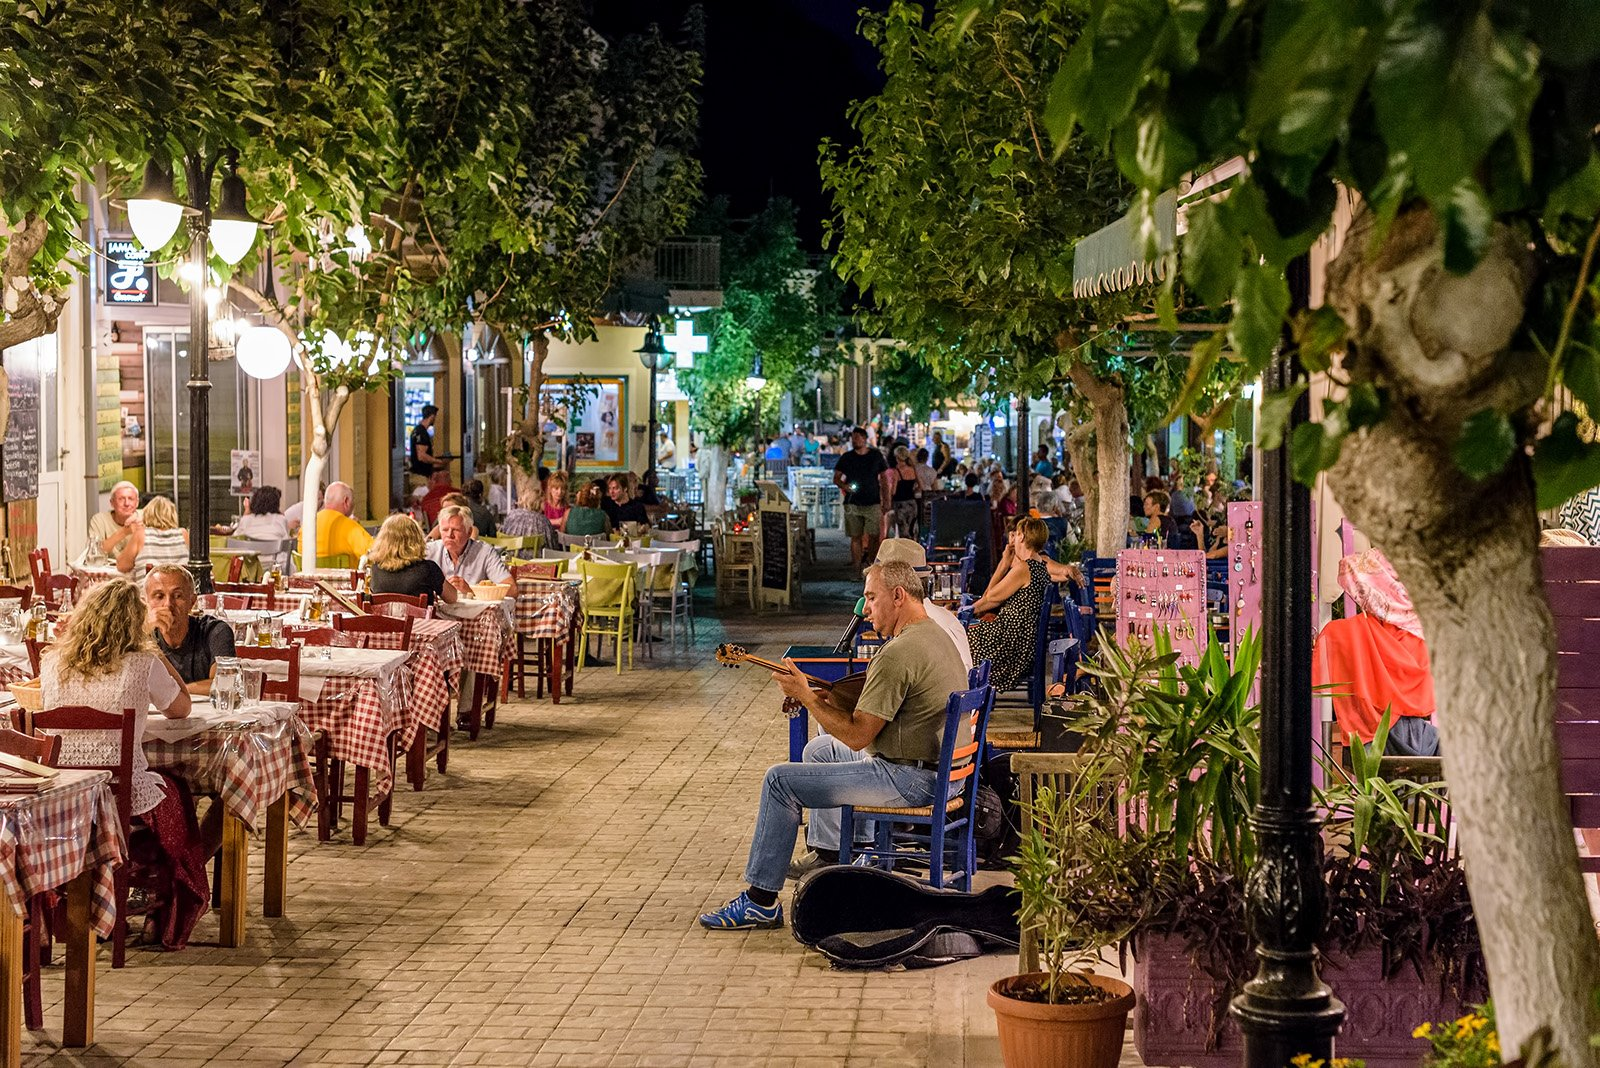 Top Attractions on Crete, Greece - Old Town Streets © Vladimir1984, Shutterstock